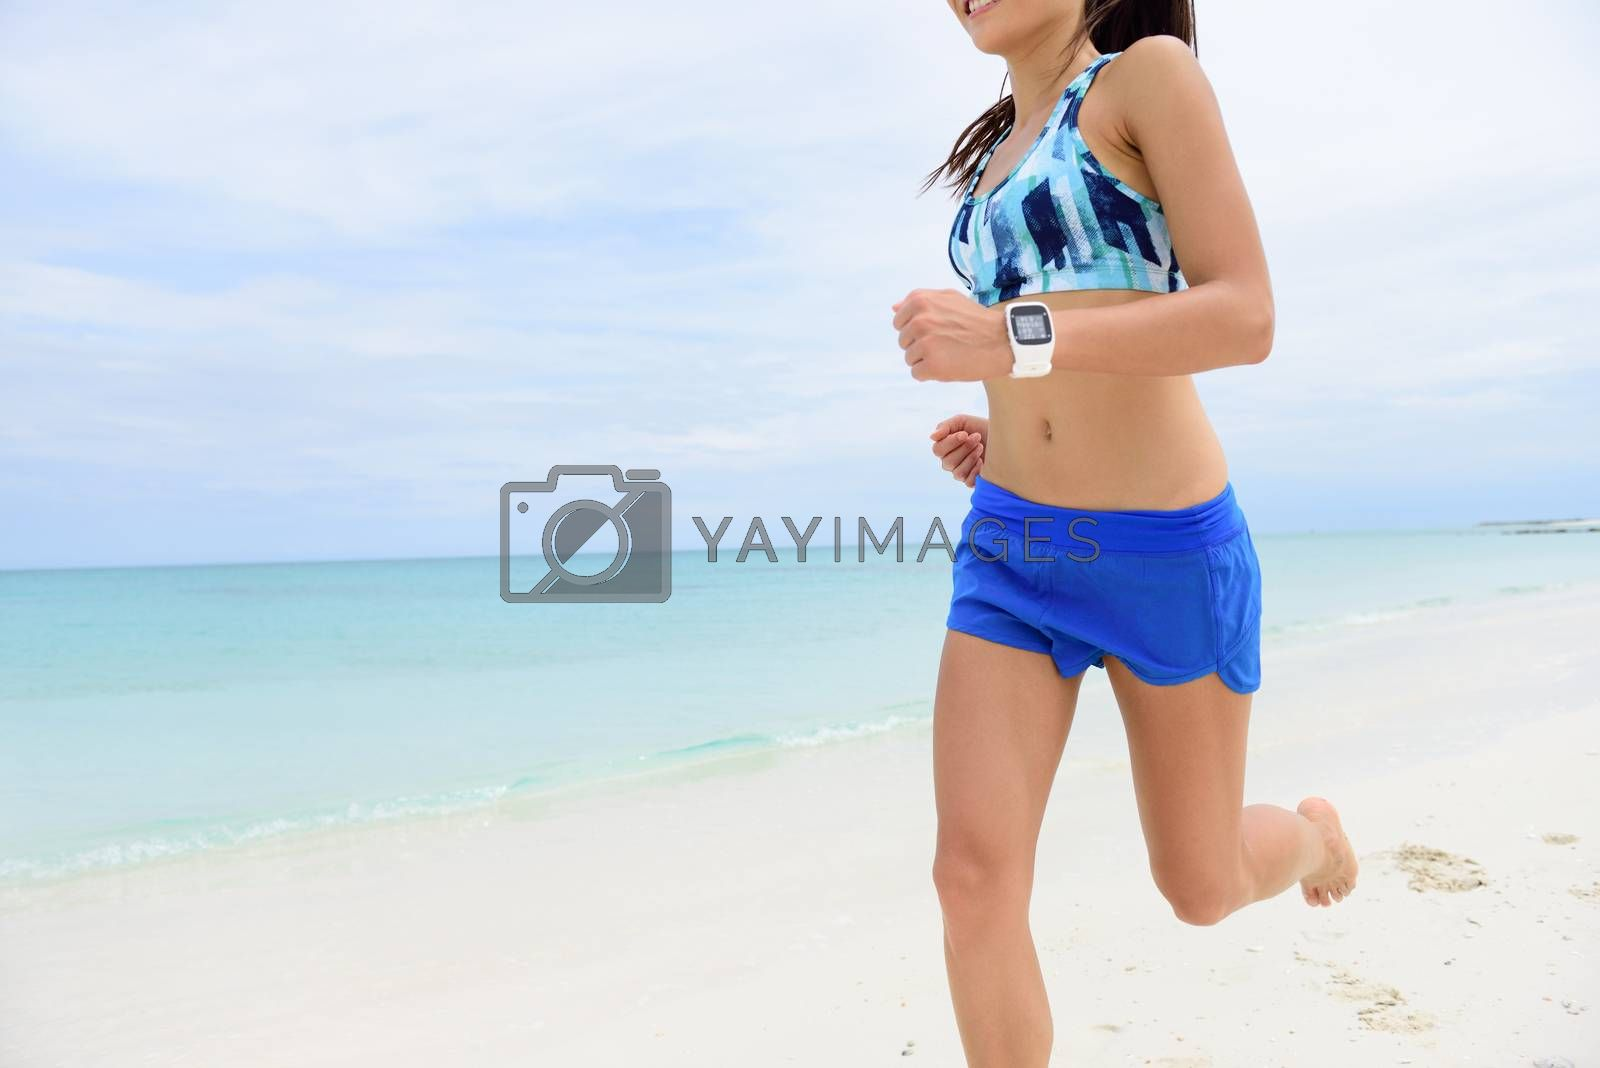 Runner running wearing smartwatch. Closeup of fitness woman wearing blue shorts and sports bra training cardio on beach using app on smart watch to monitor heart rate and speed.